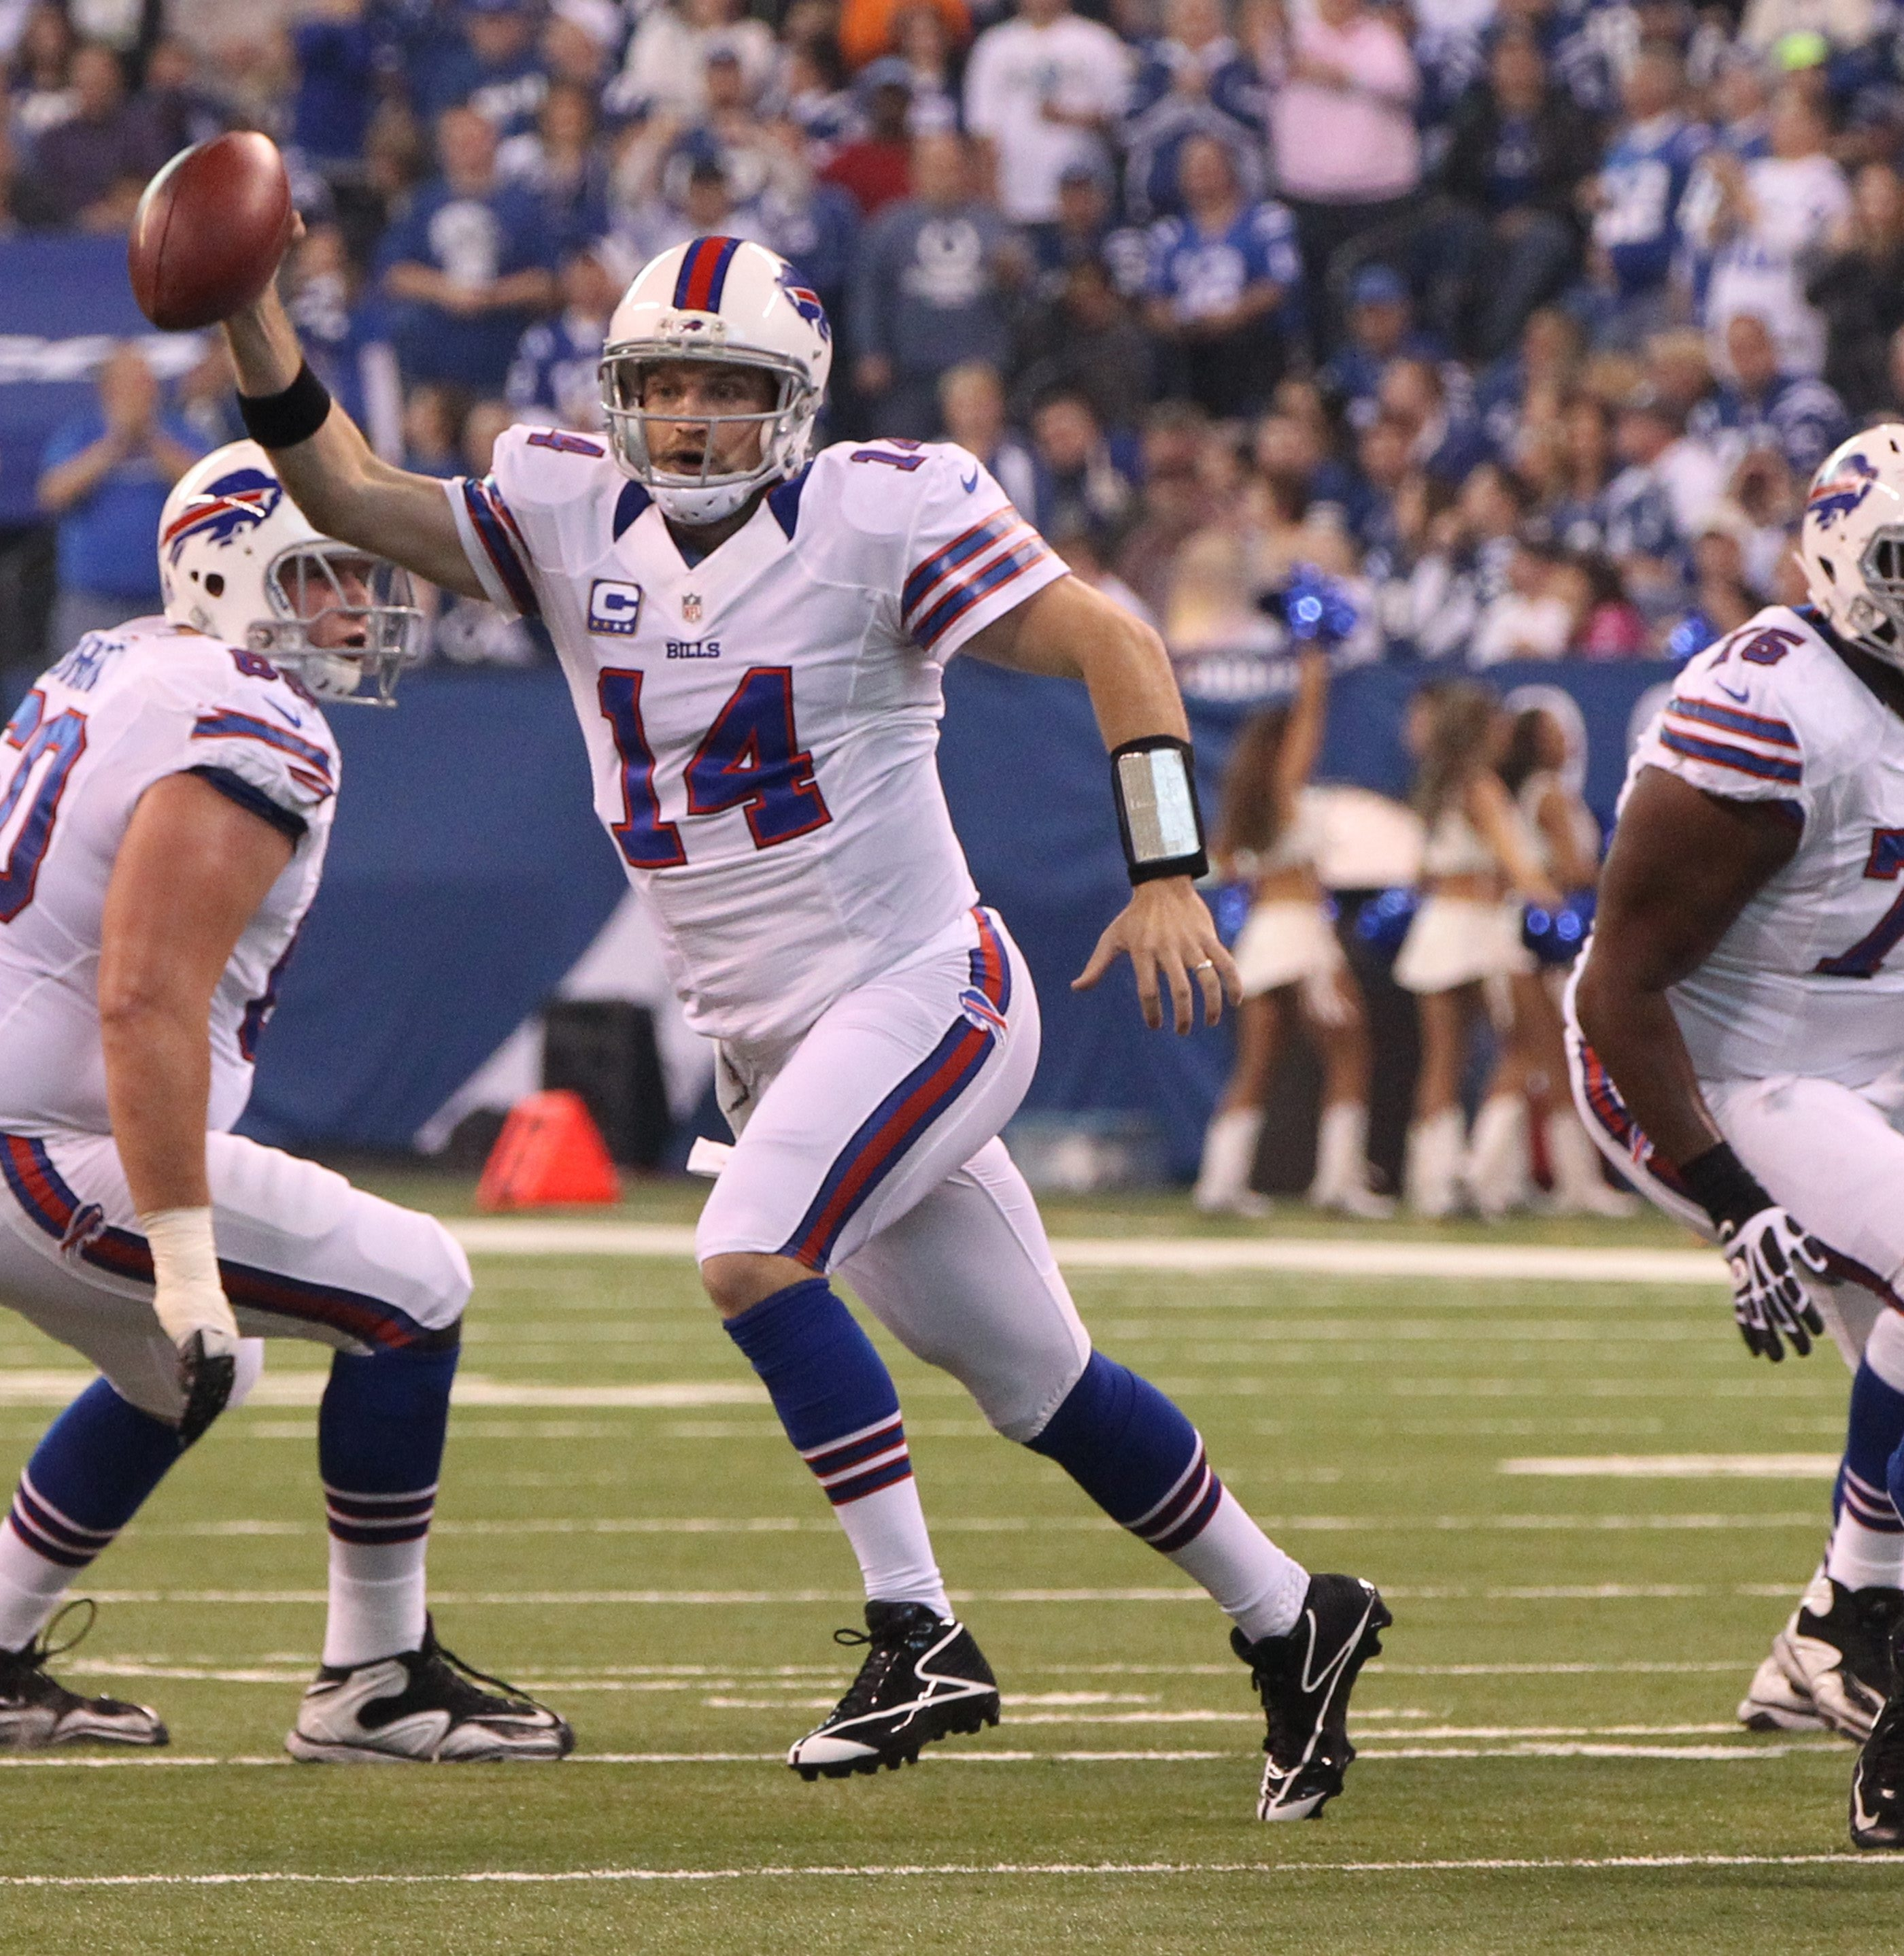 Ryan Fitzpatrick has led the Bills to four wins this season against teams that are a combined 13-31.